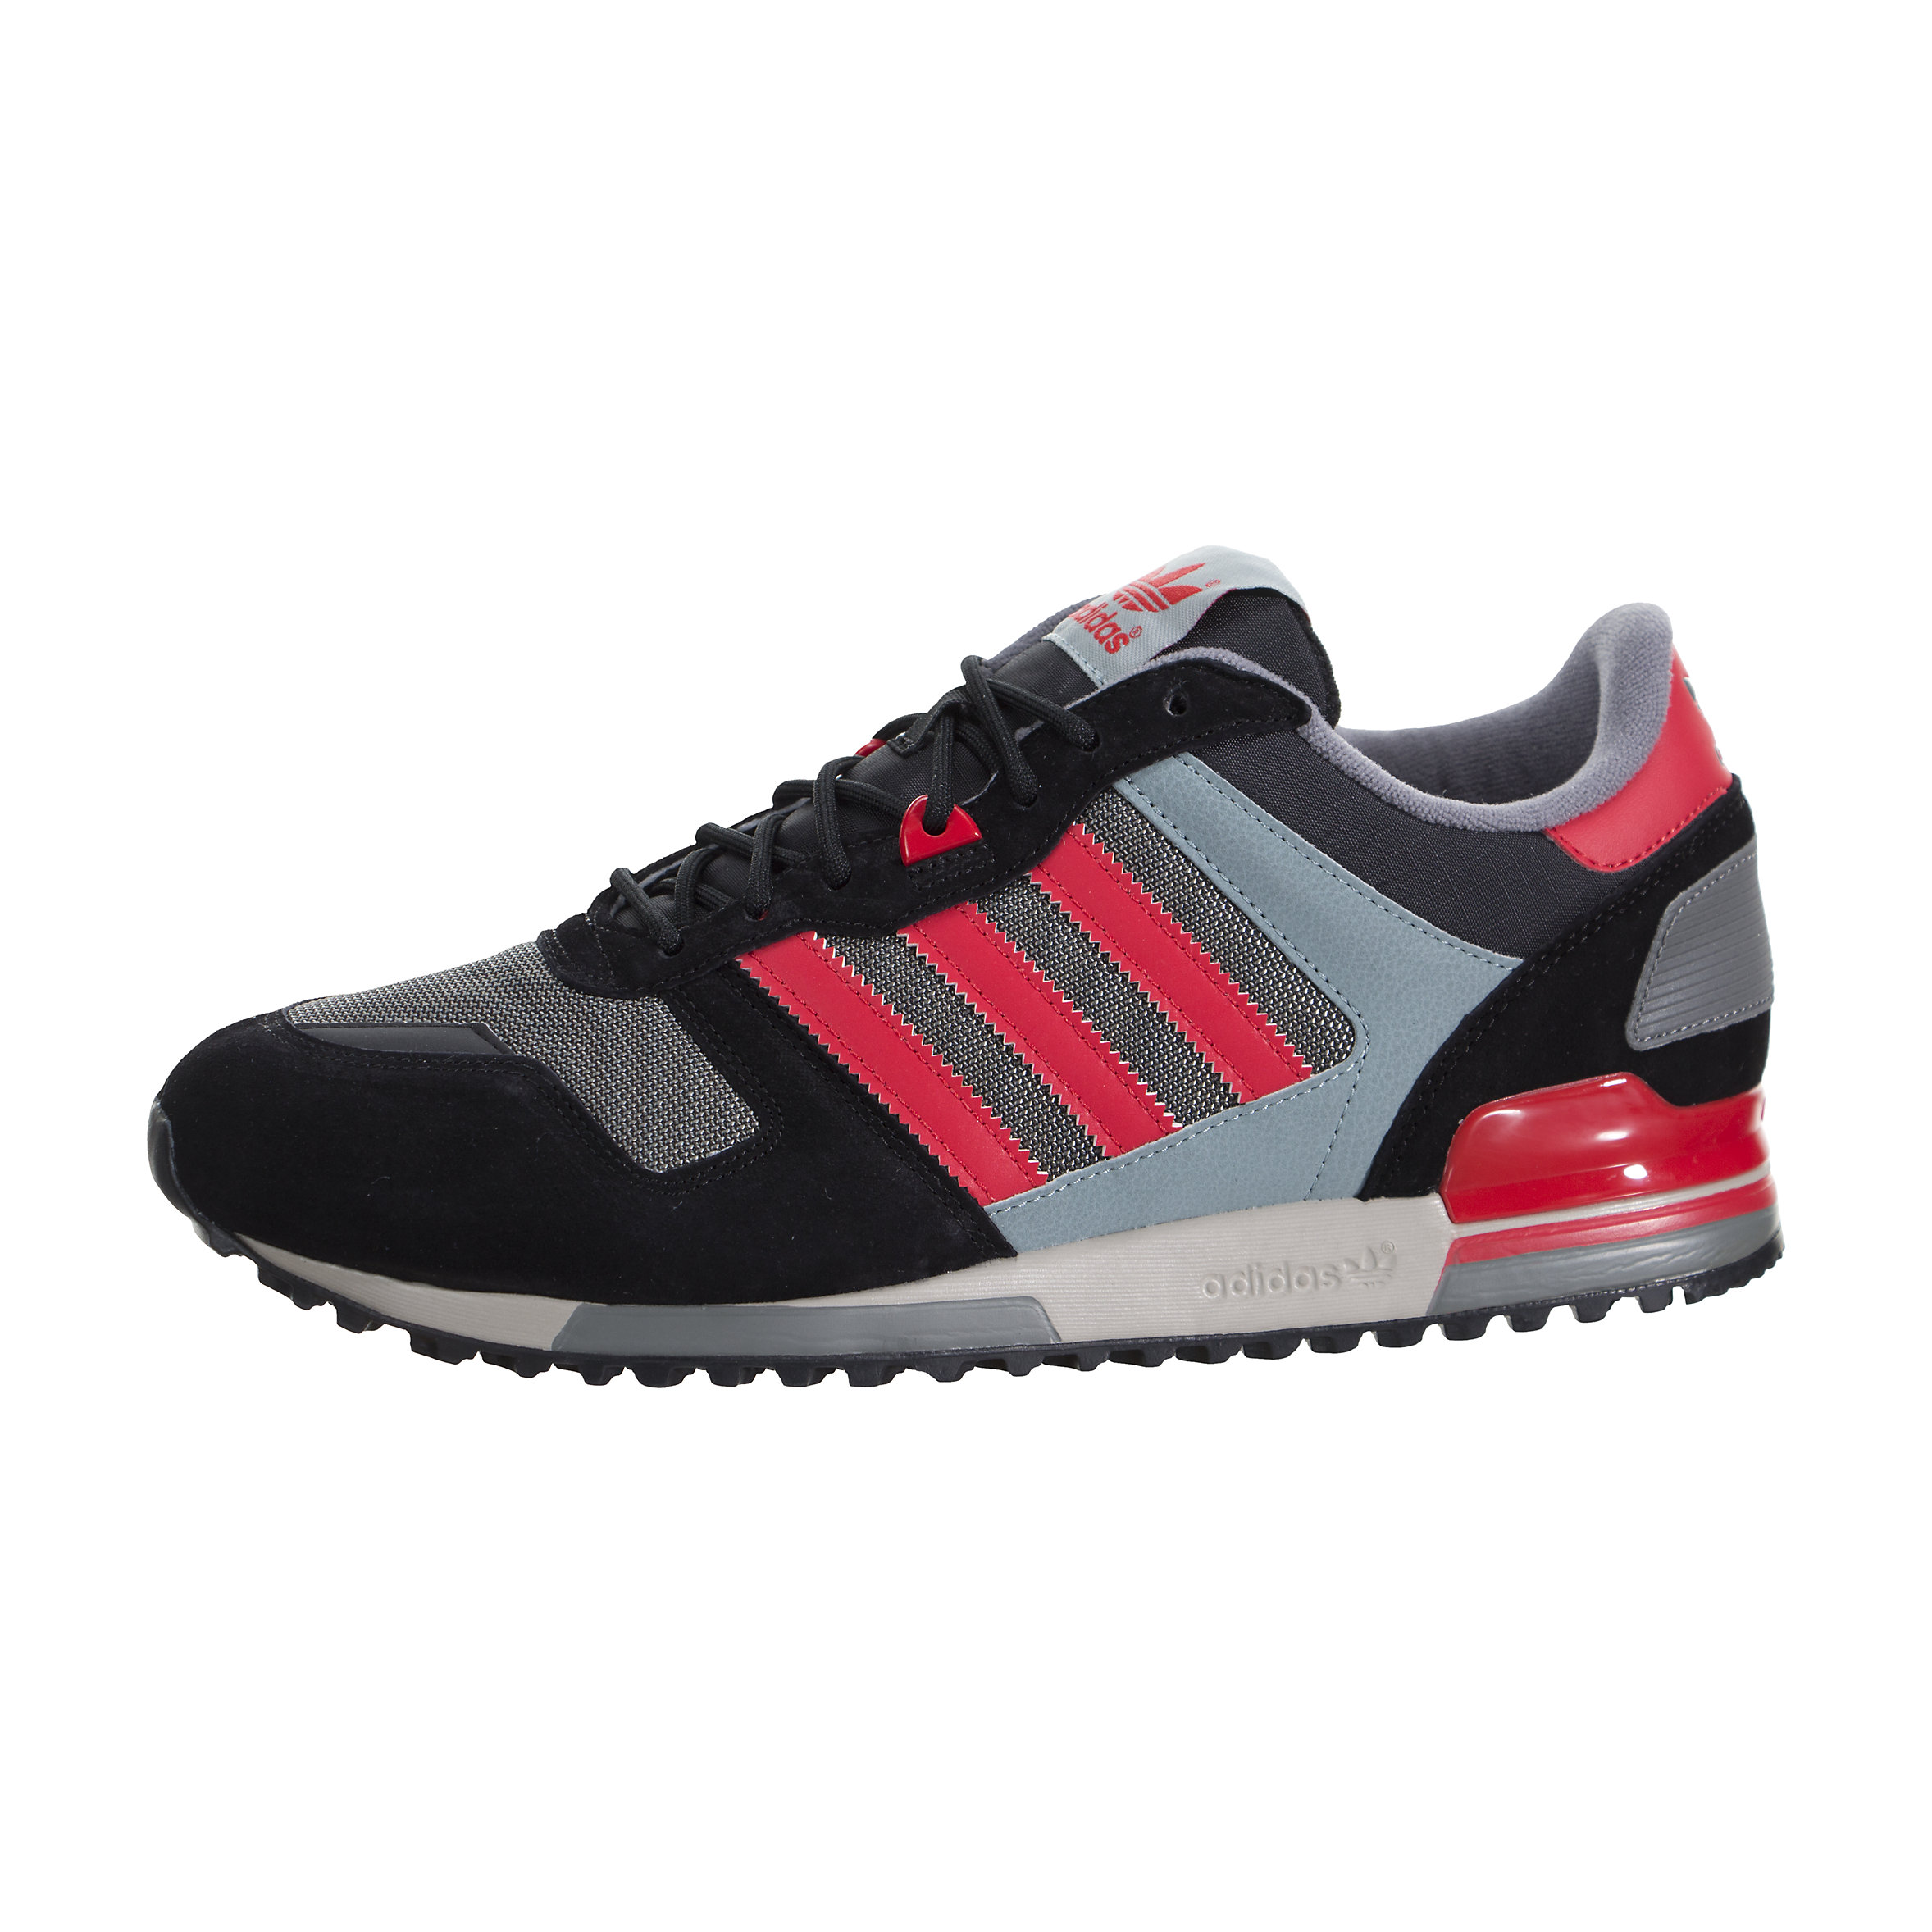 66b0b926afa8b buy adidas cloudfoam swift racer for kids babolat tennis shoes for kids